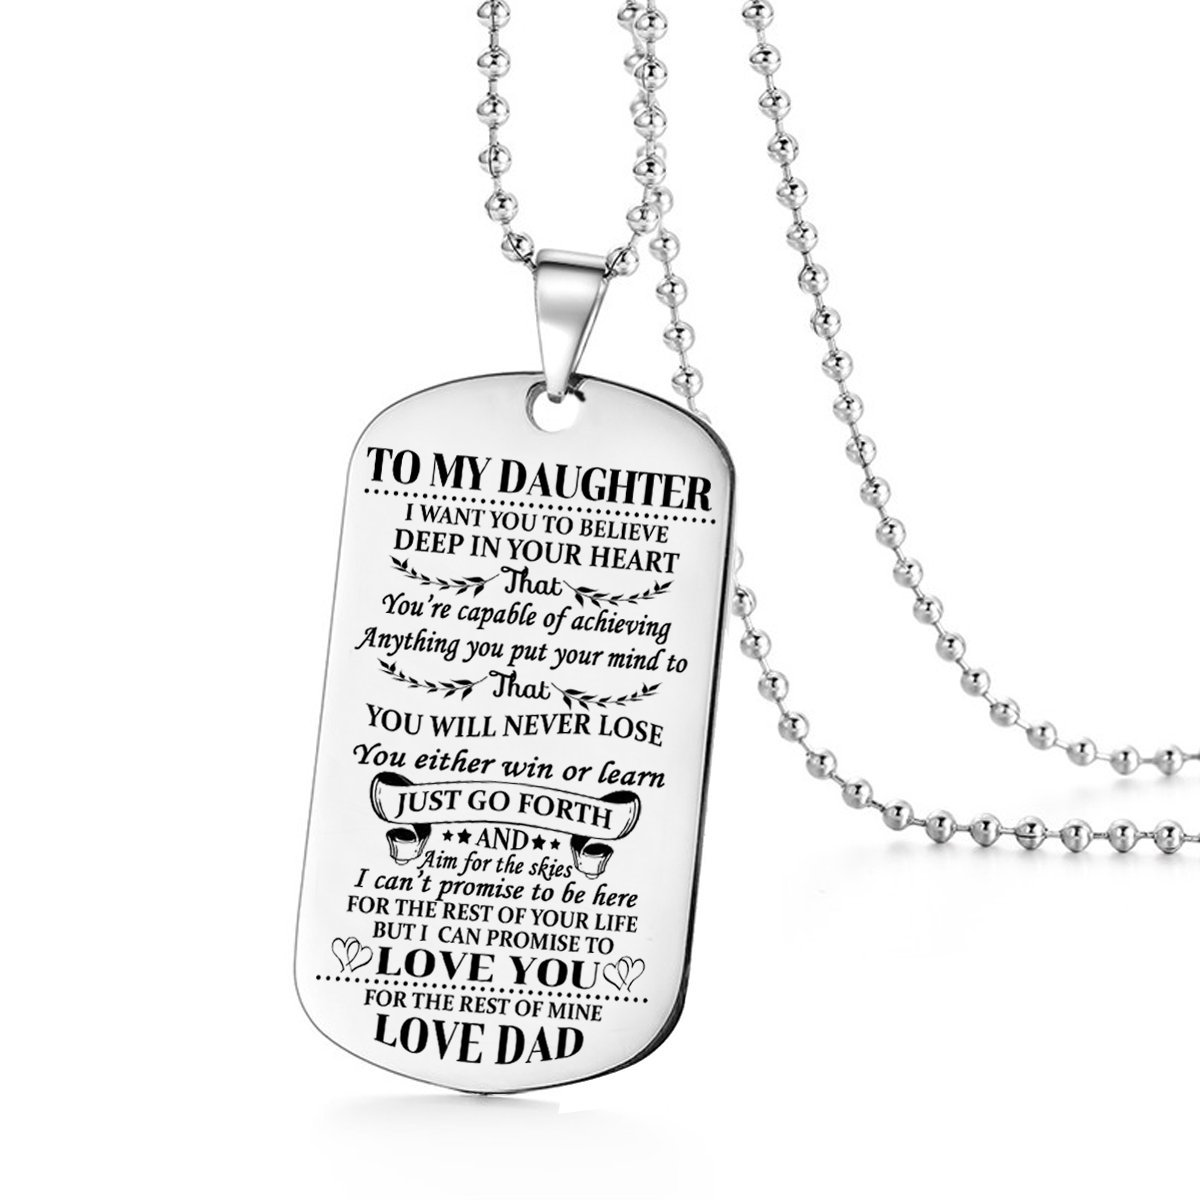 To My Daughter I Want You To Believe Love Dad Dog Tag Military Air Force Navy Coast Guard Necklace Ball Chain Gift for Best Daughter Birthday Graduation Stainless Steel Stashix UK_B07CVTMZQG